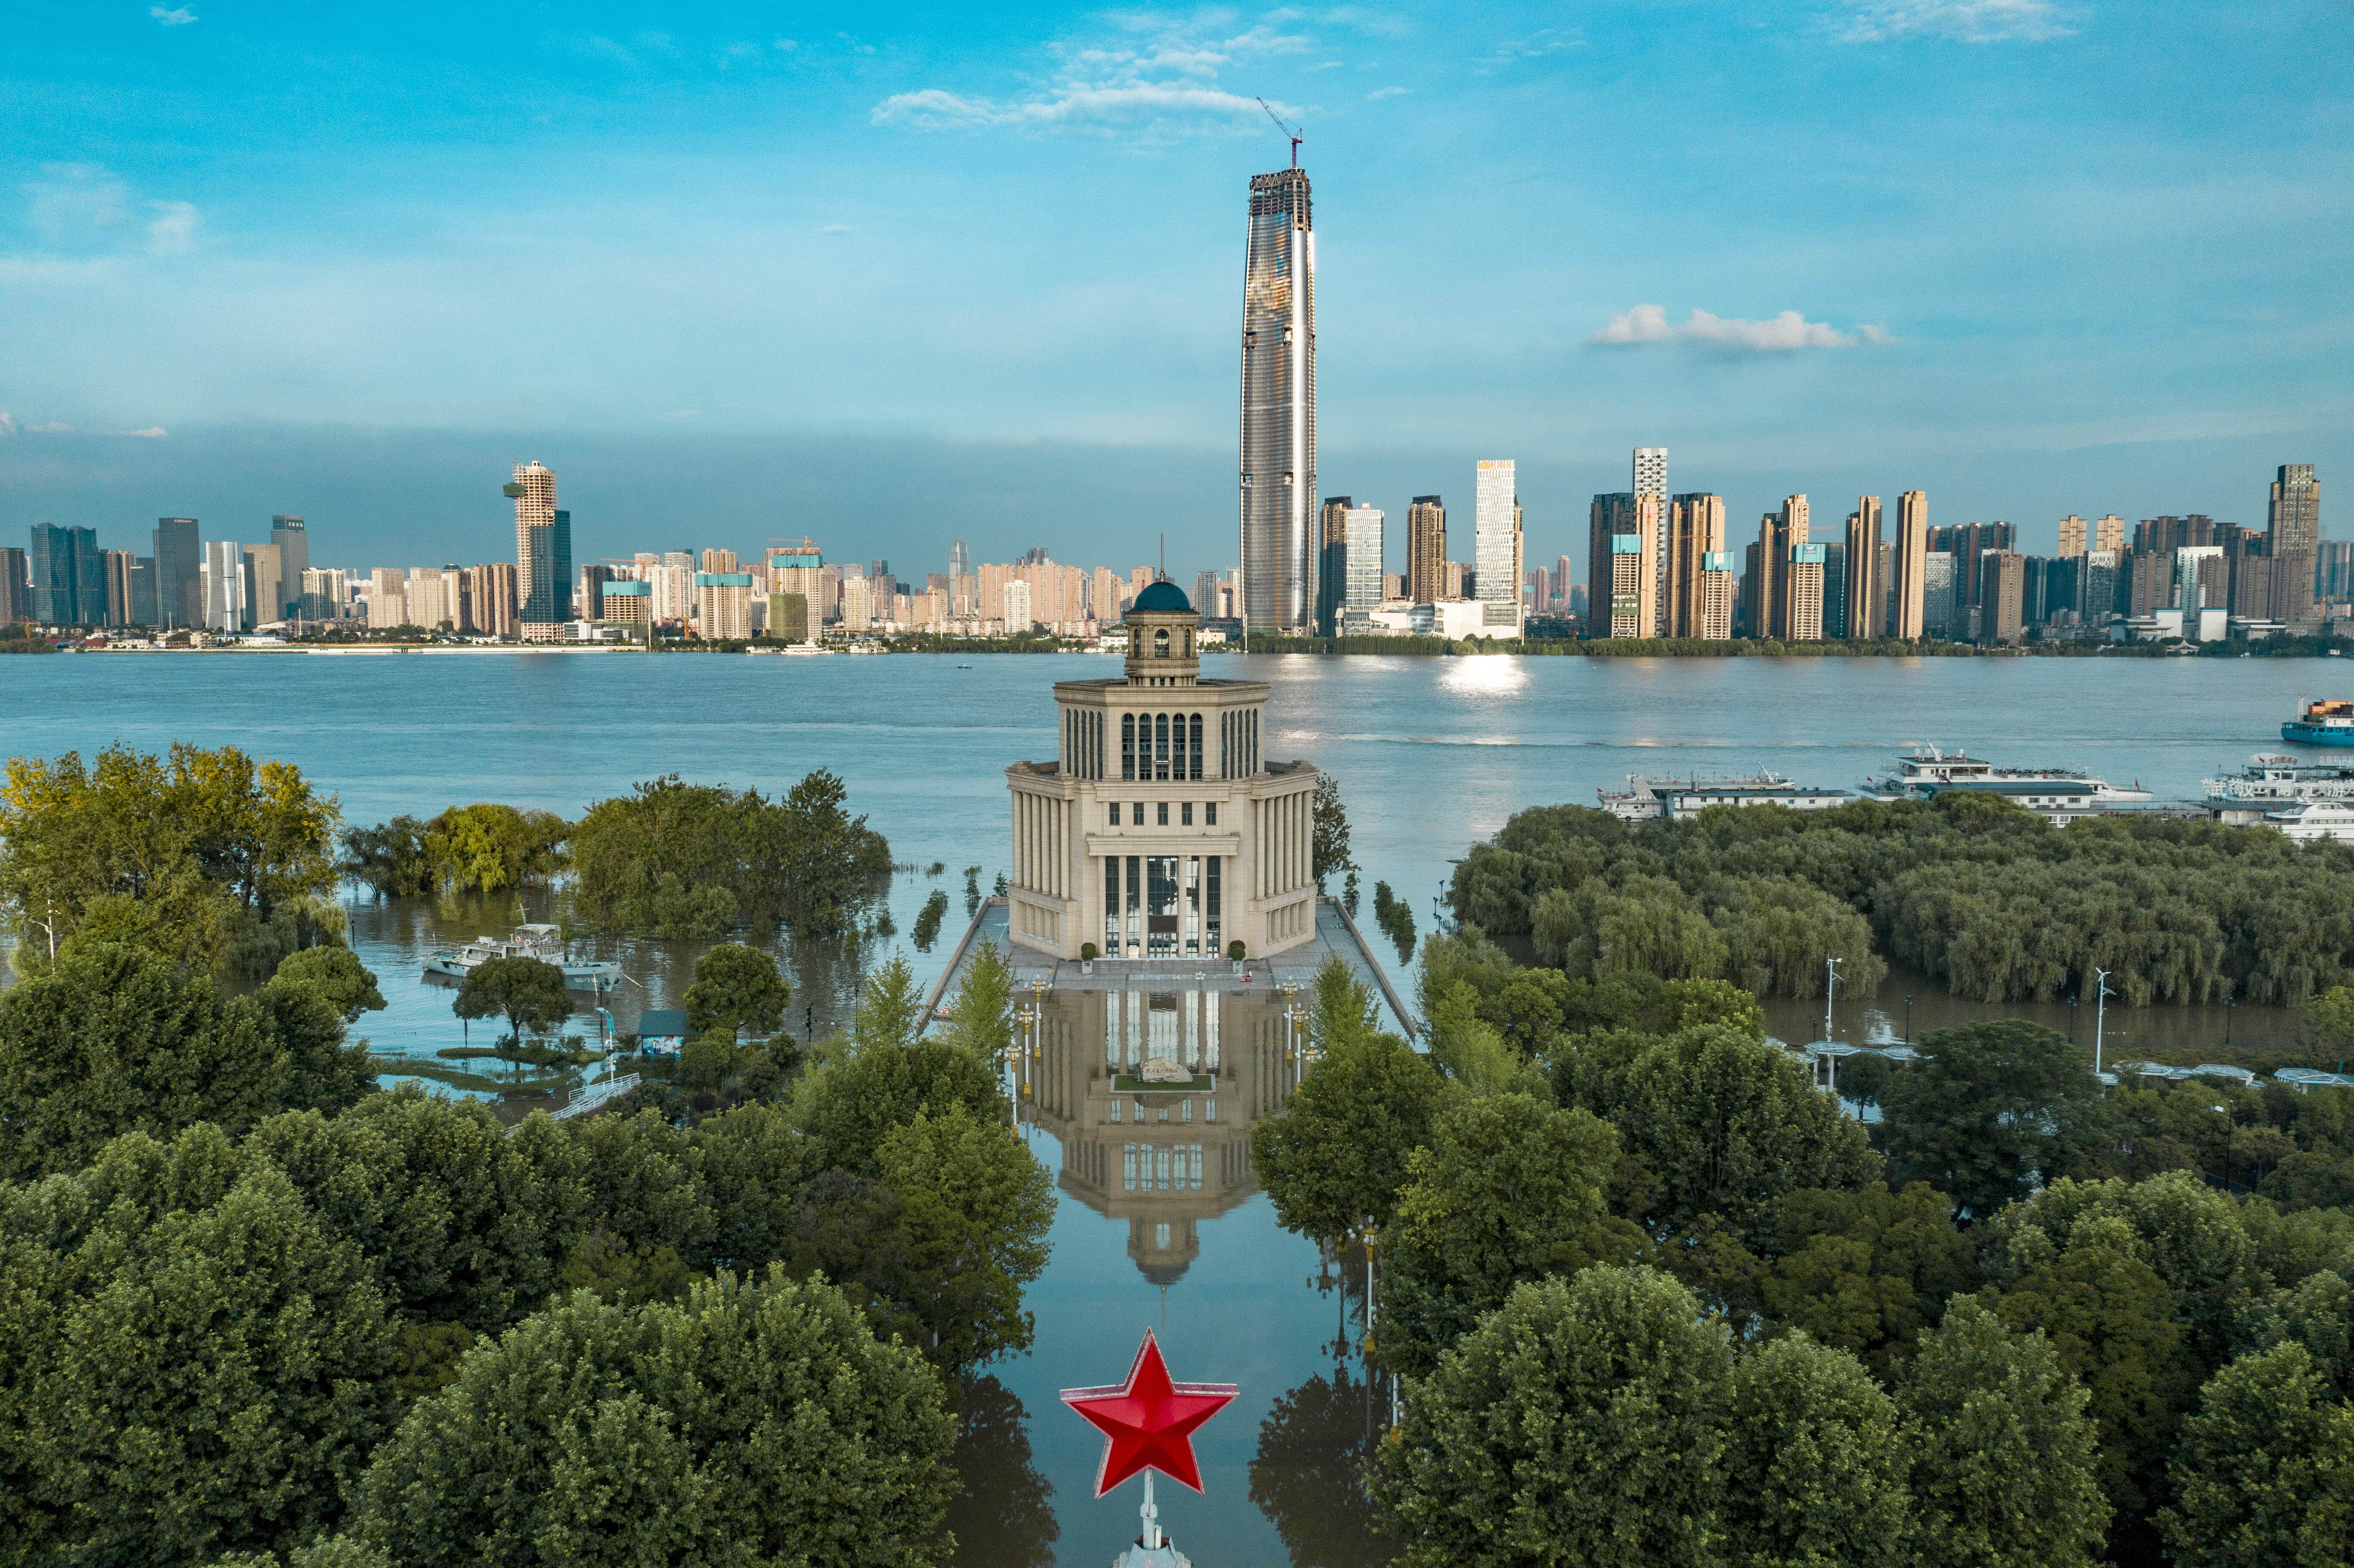 An aerial view of the flooded riverside park along the Yangtze River in Wuhan.